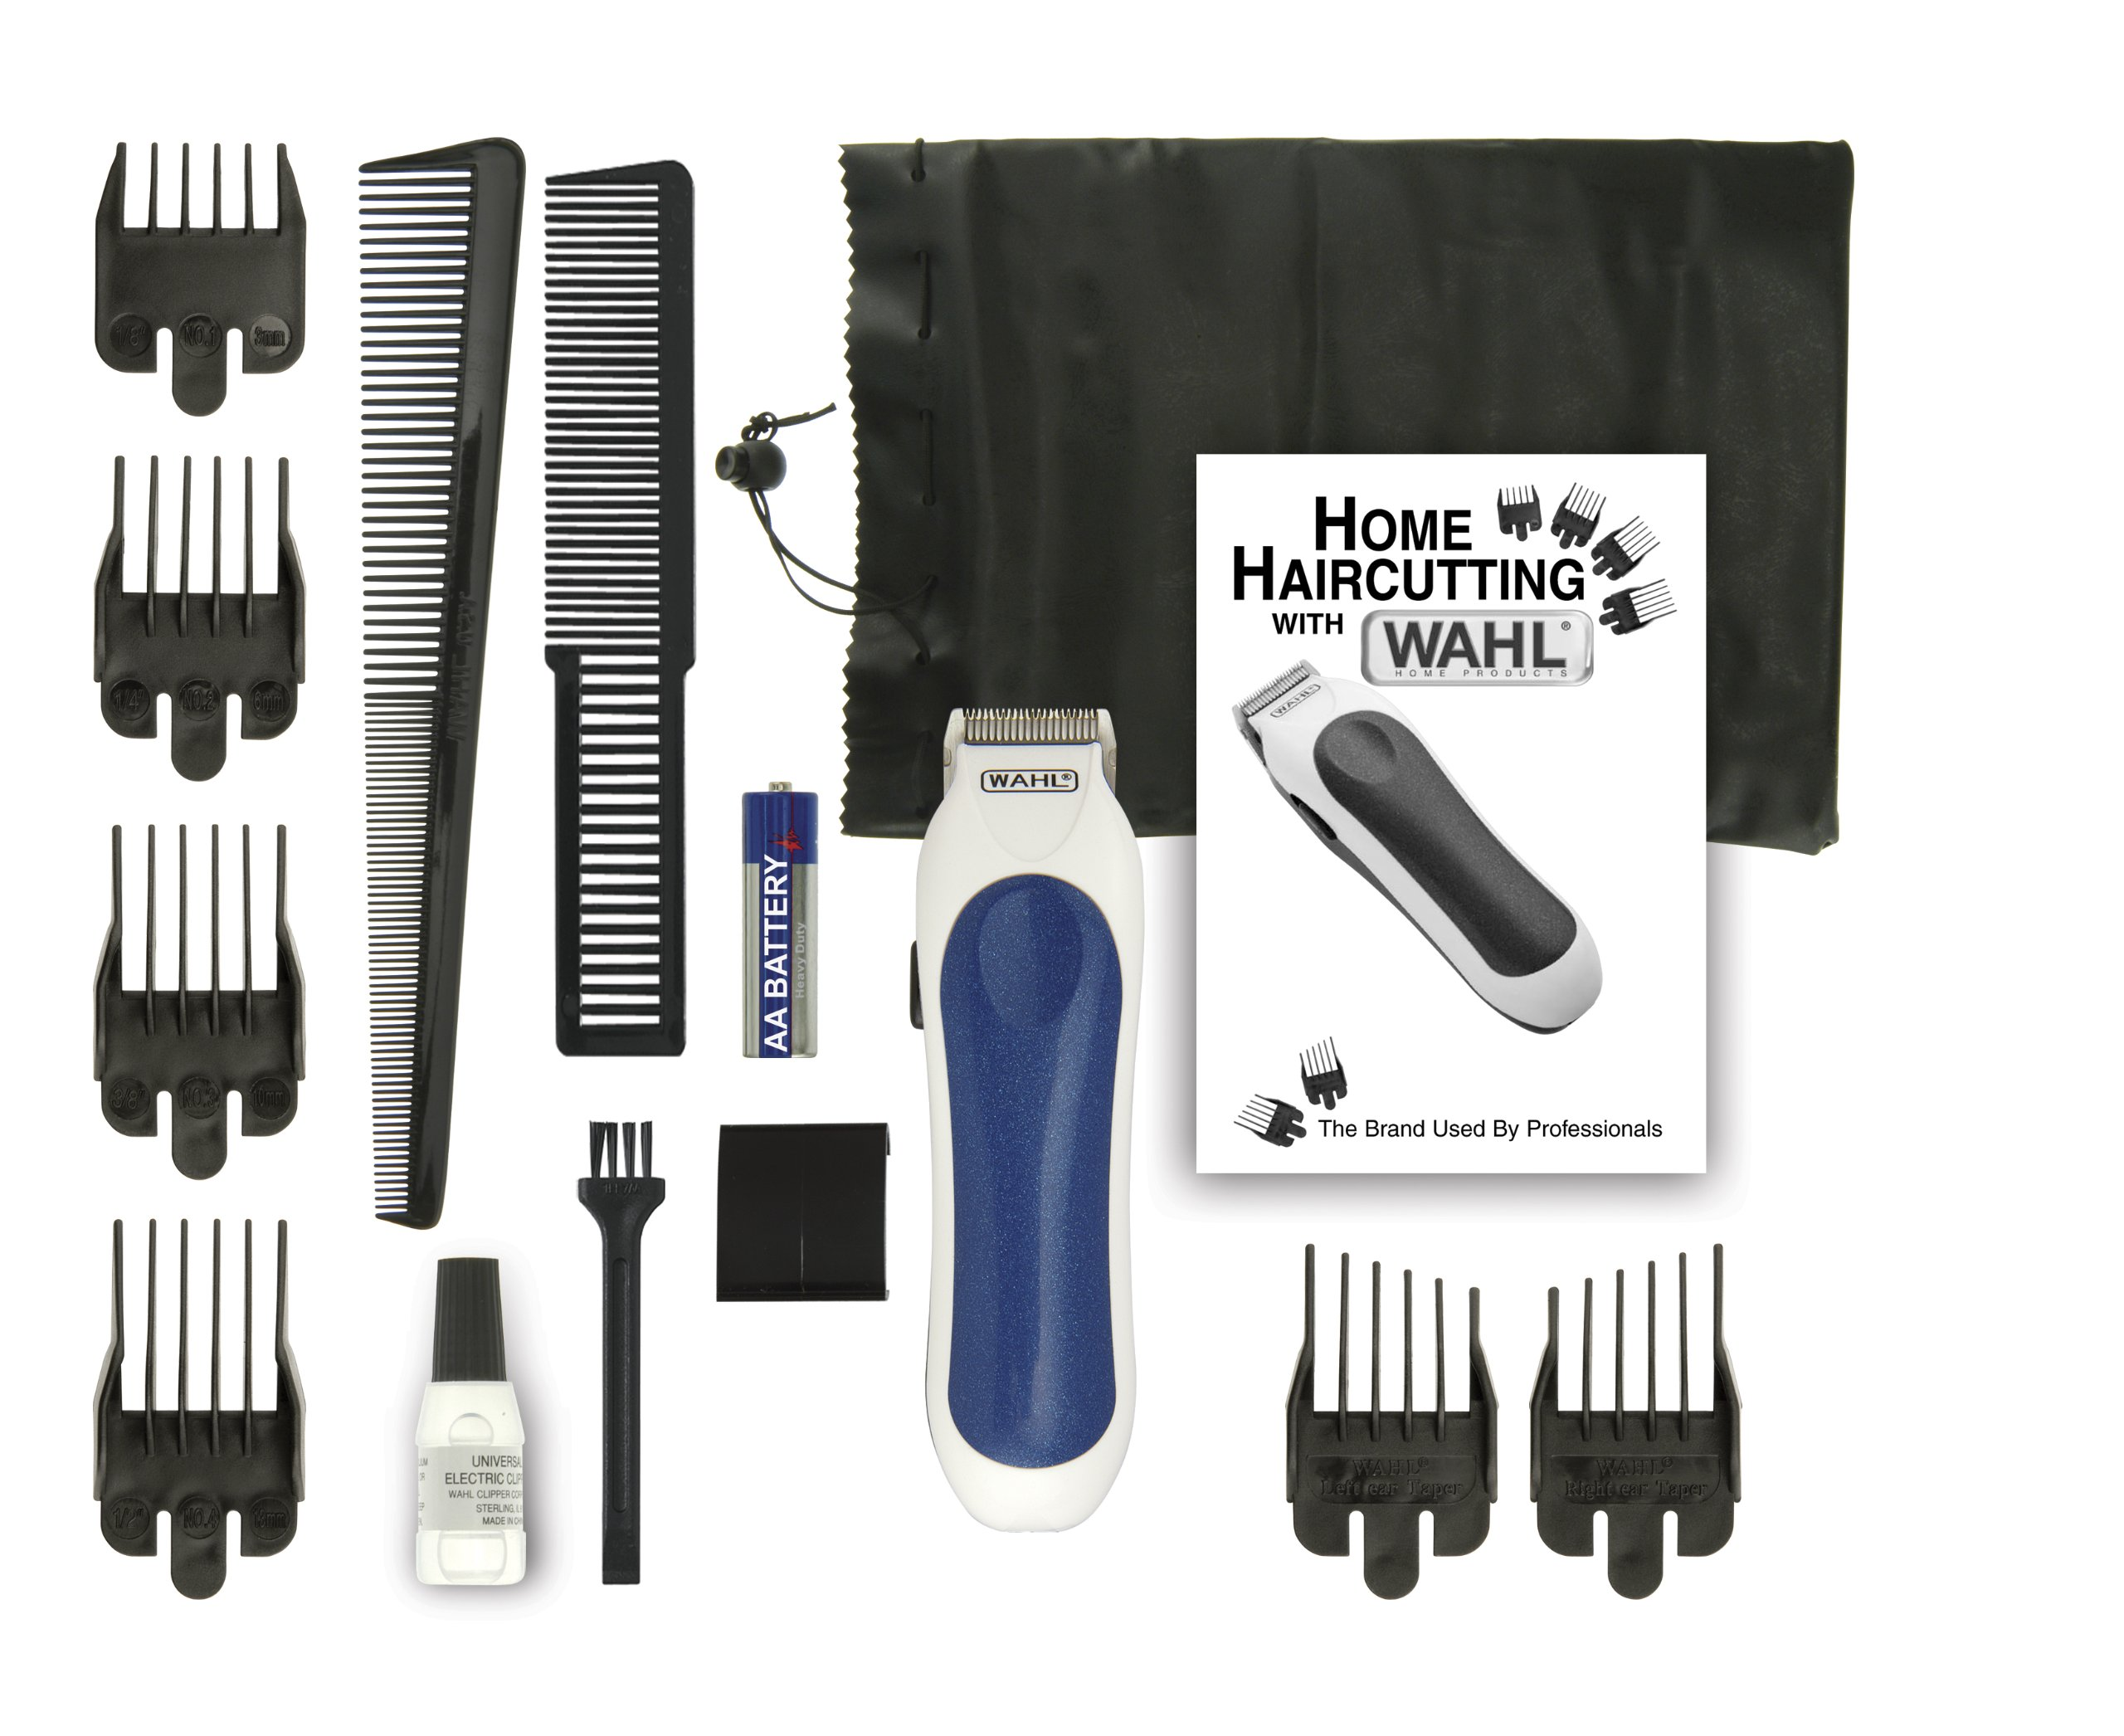 Wahl 9307-1101 Cordless Mini Pro 14 Piece Touch-up and Trim Haircutting Kit, White/blue